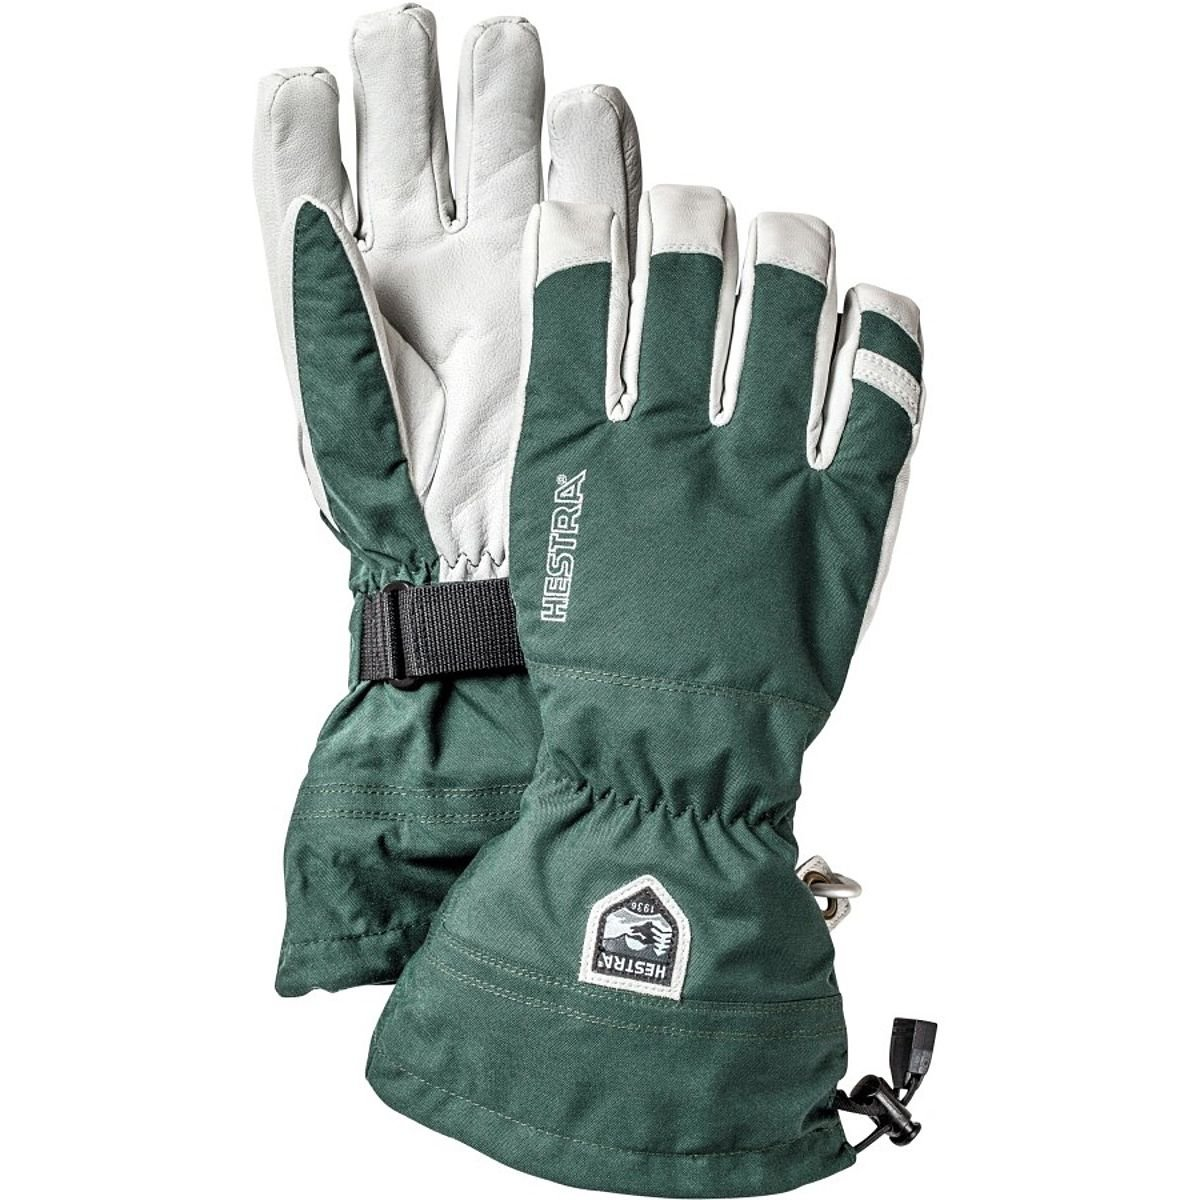 Hestra Heli Ski Glove, Bottle Green, 11 by Hestra